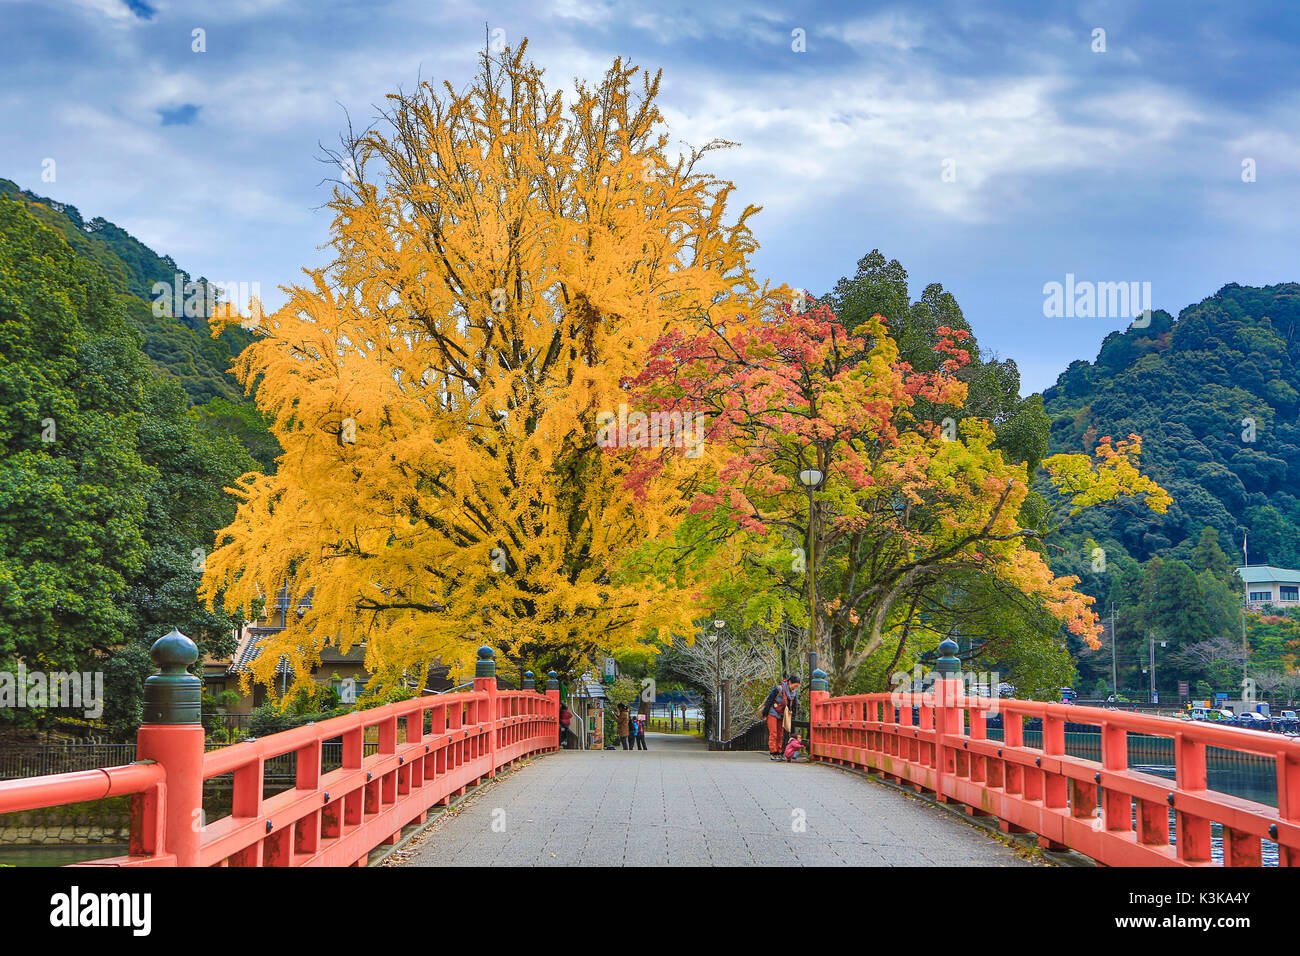 Japan, Kansai, Kyoto, Uji City,bridge - Stock Image